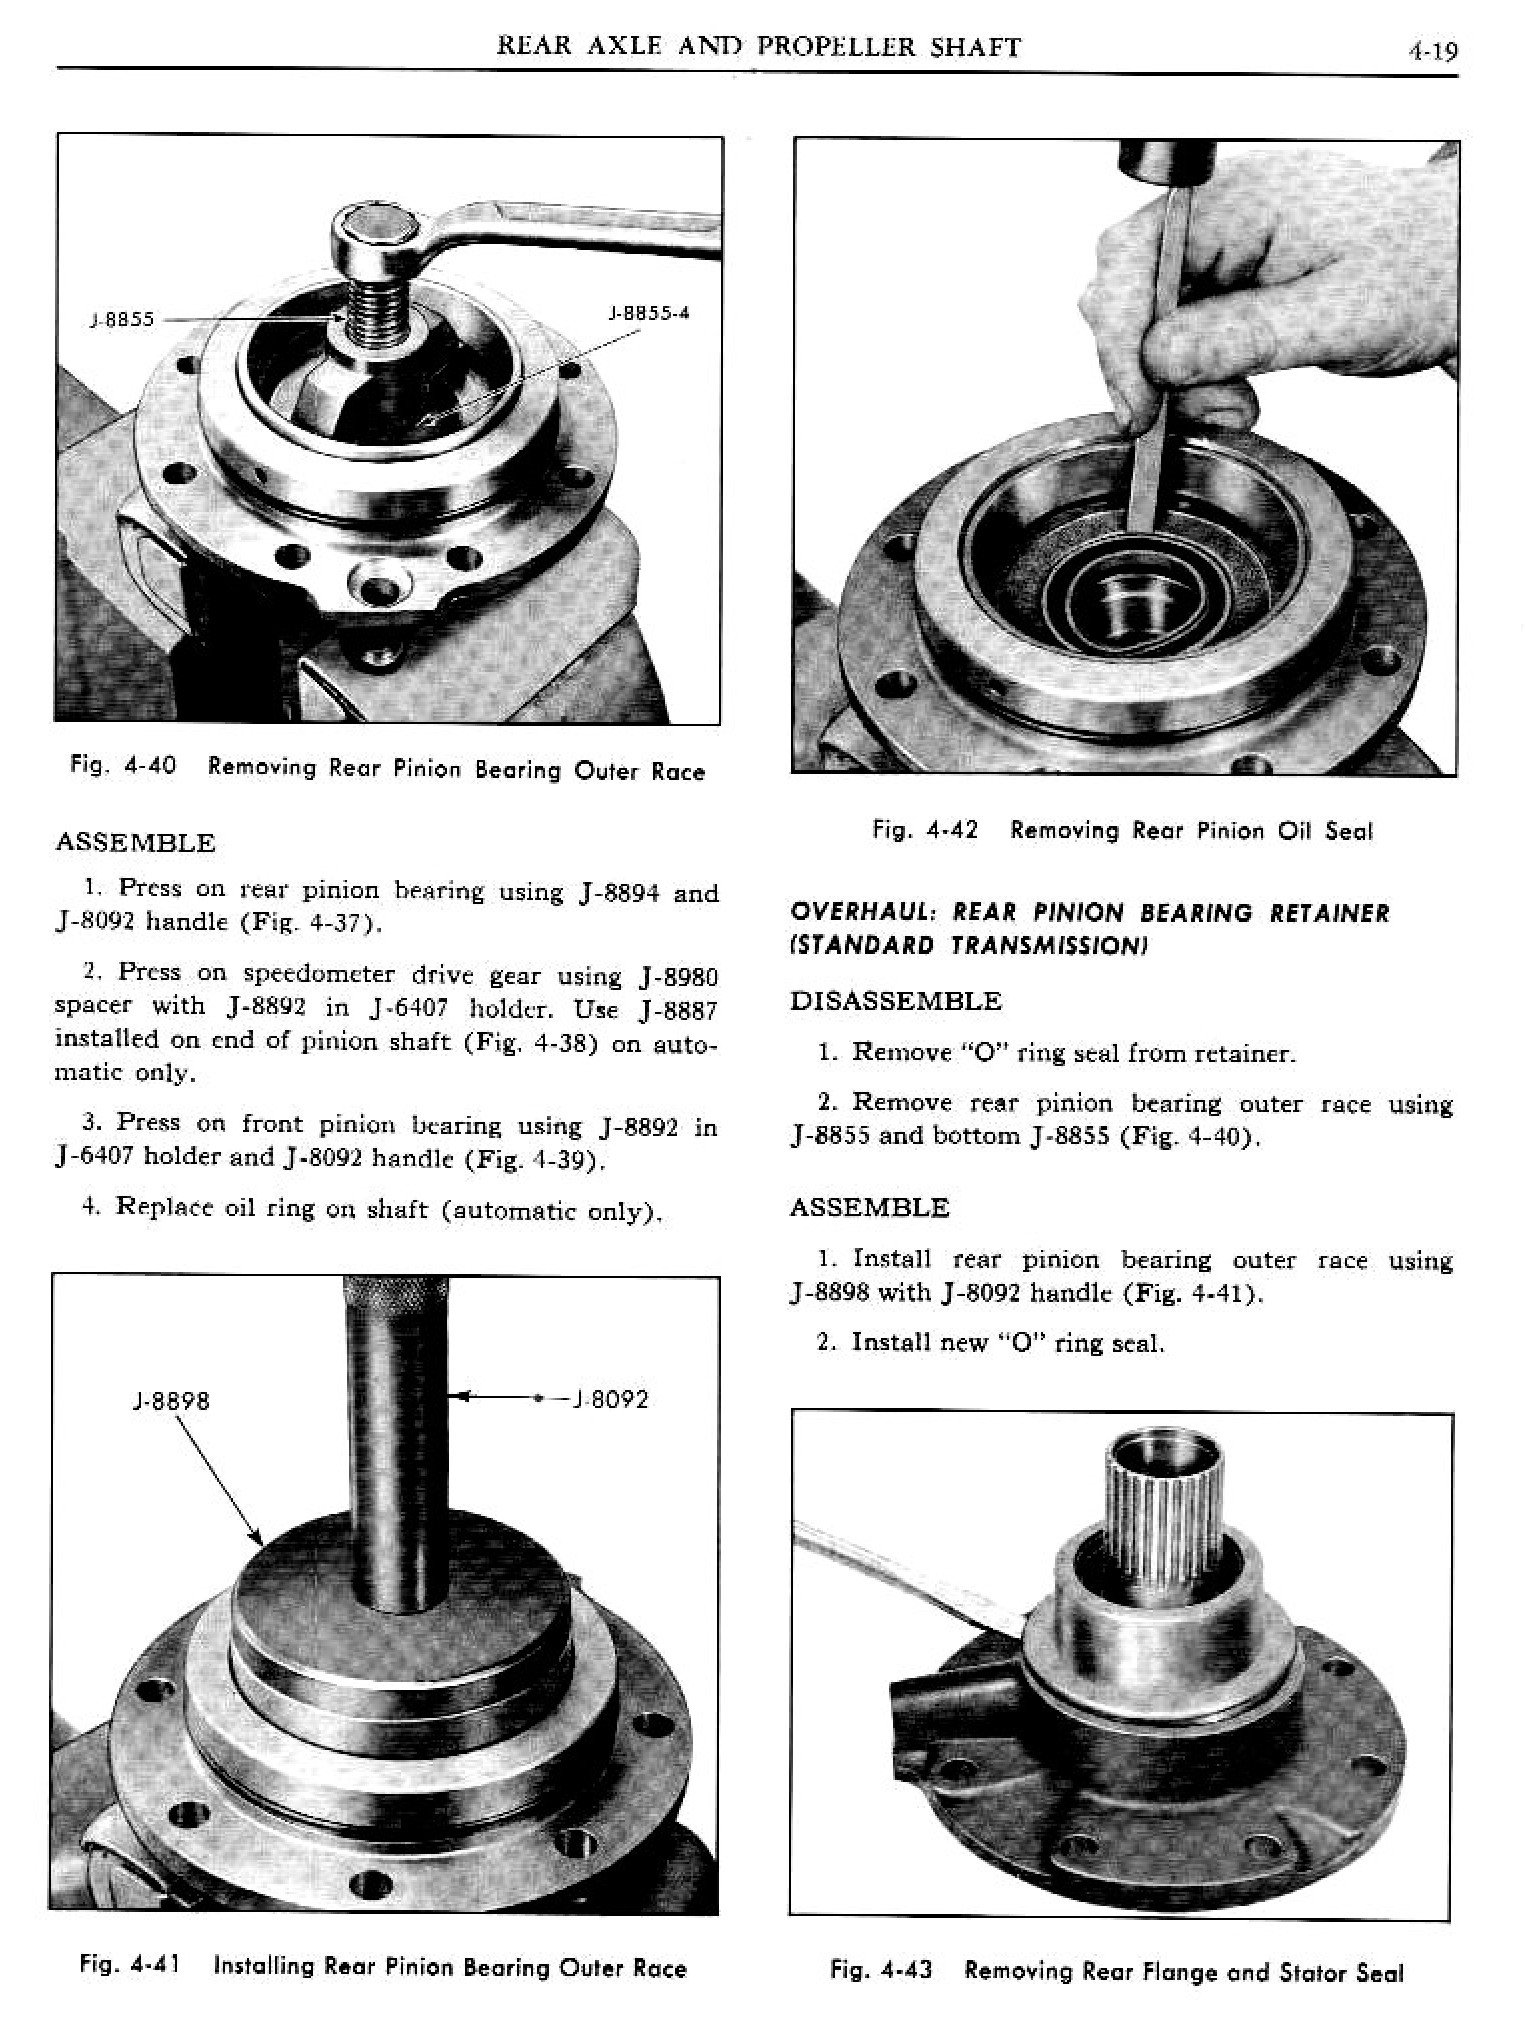 1961 Pontiac Tempest Shop Manual- Rear Axle Page 19 of 28